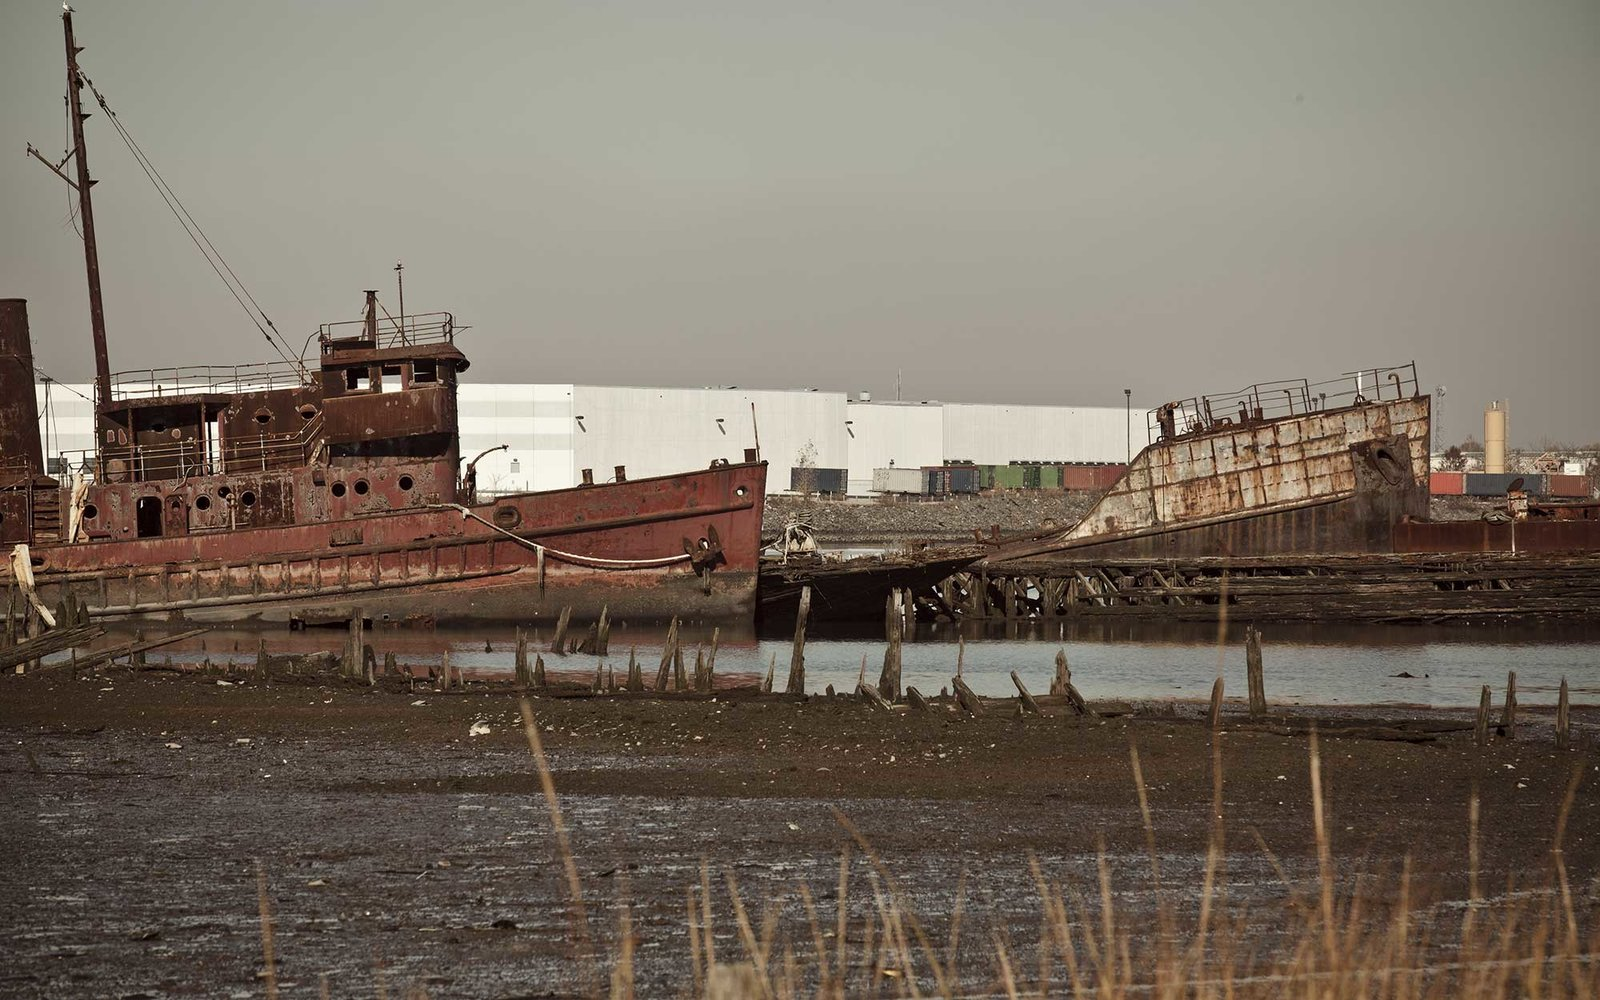 Abandoned ships in New York City